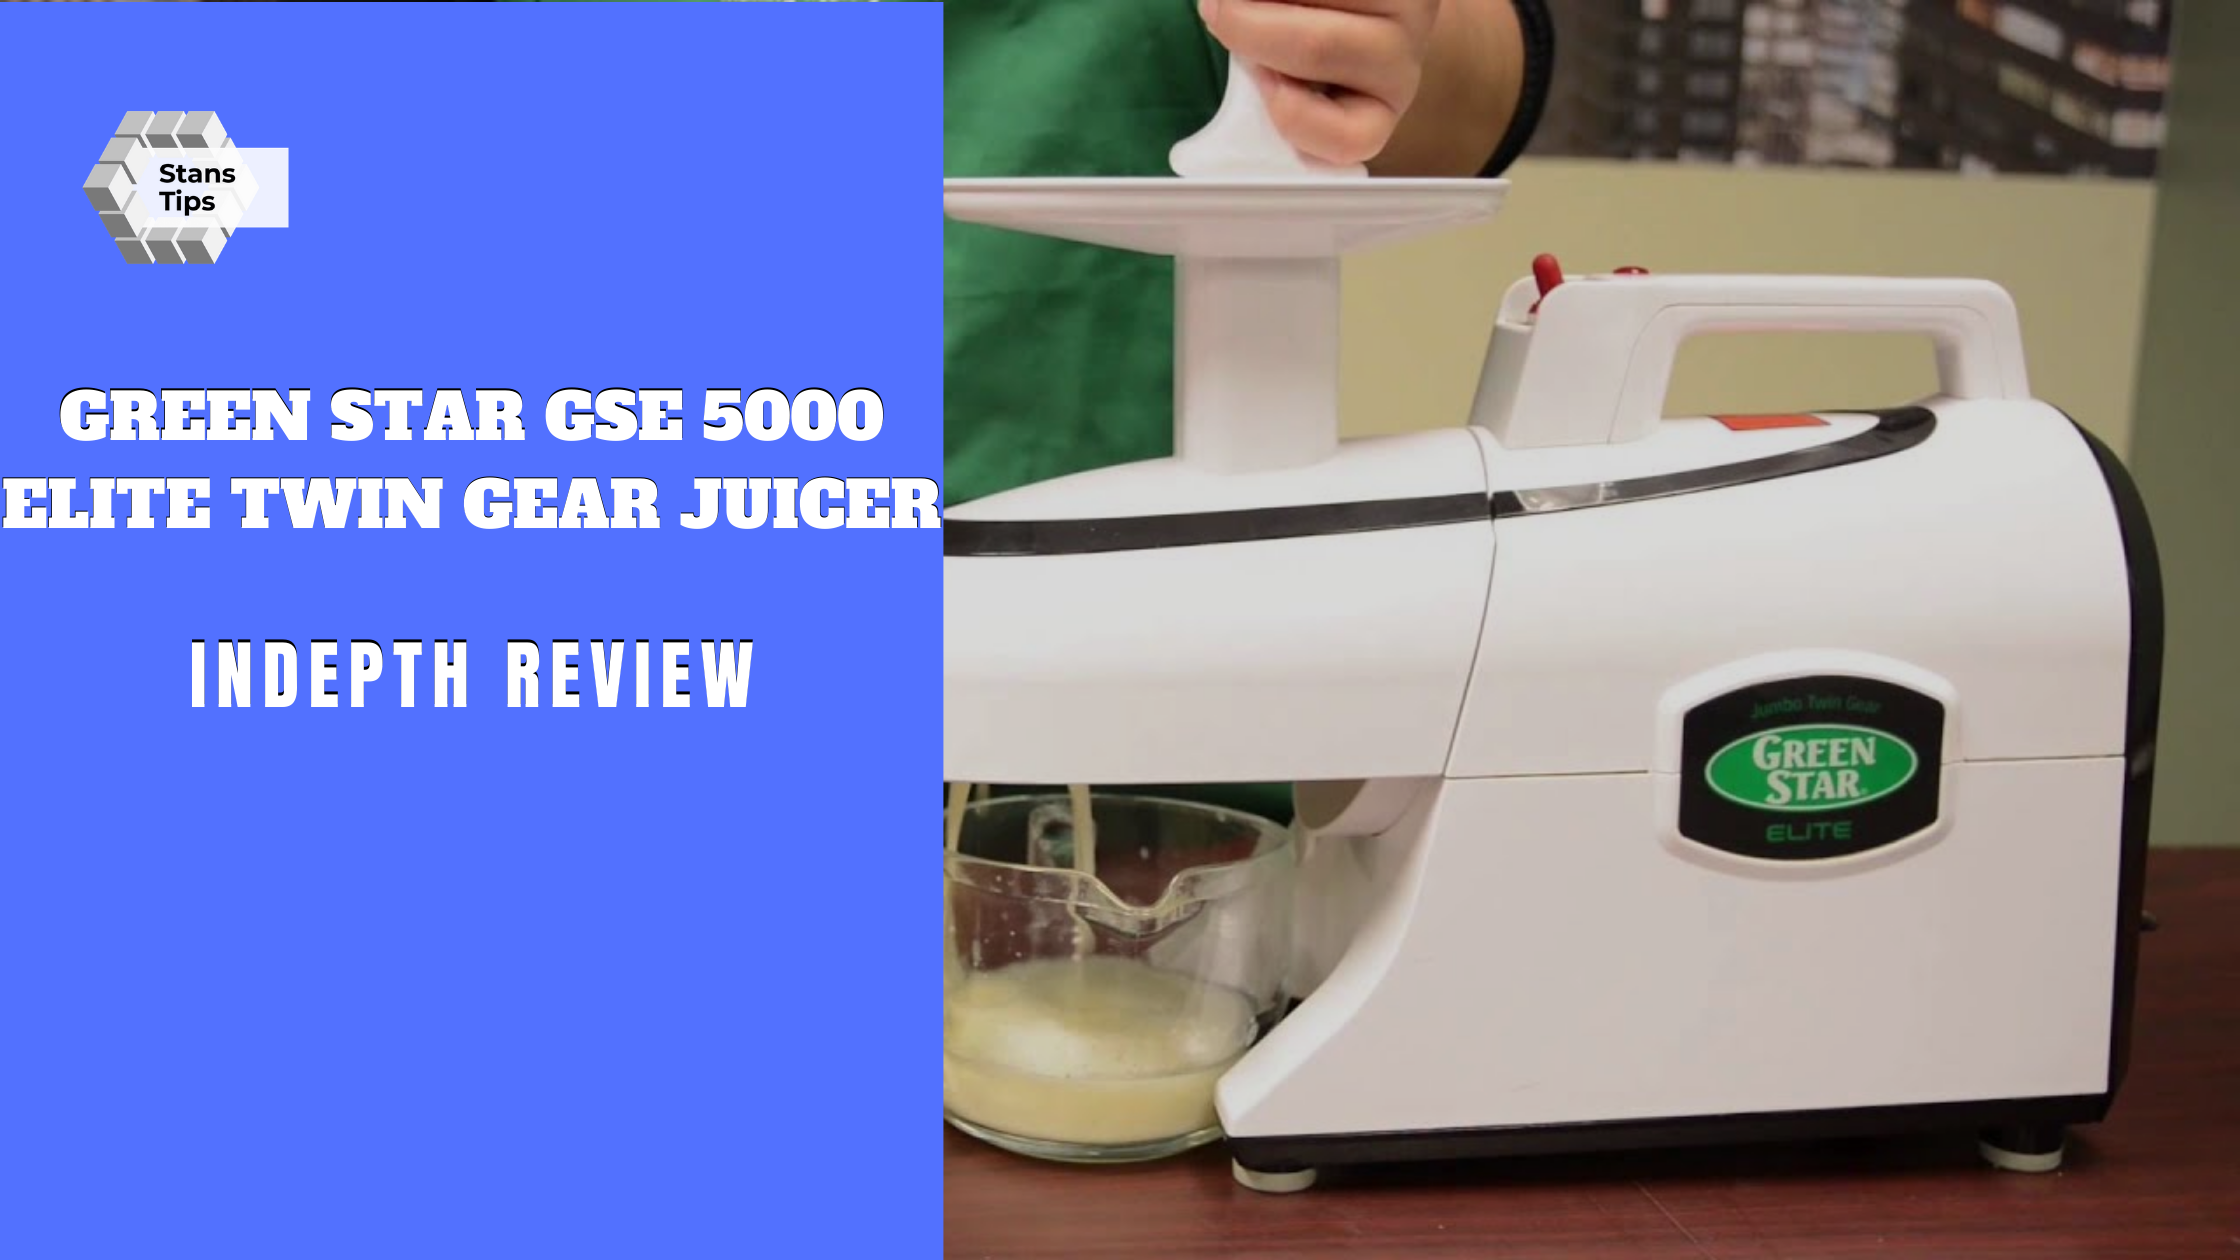 Green star gse 5000 elite twin gear juicer review